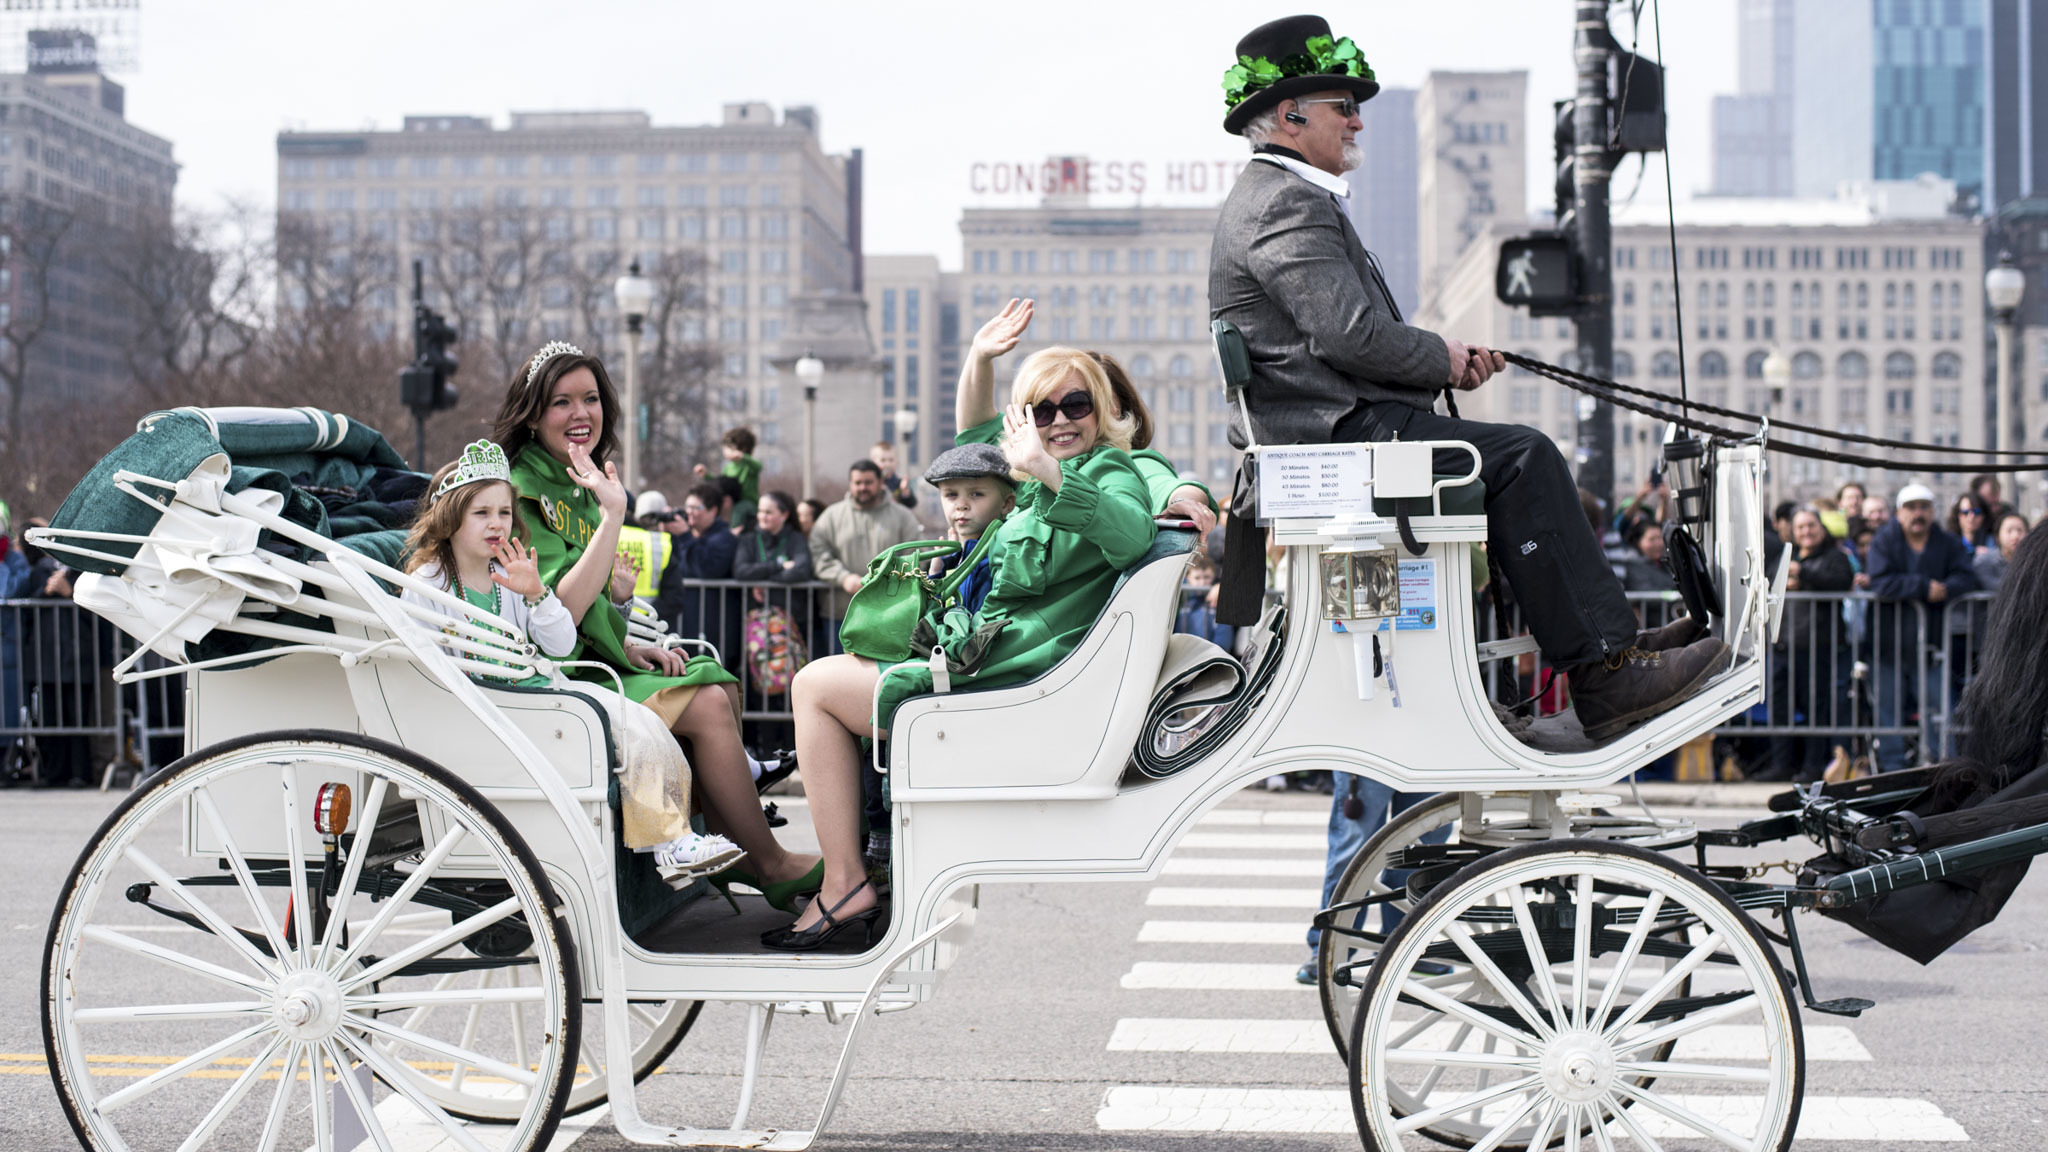 10 fun facts about St. Patrick's Day in Chicago